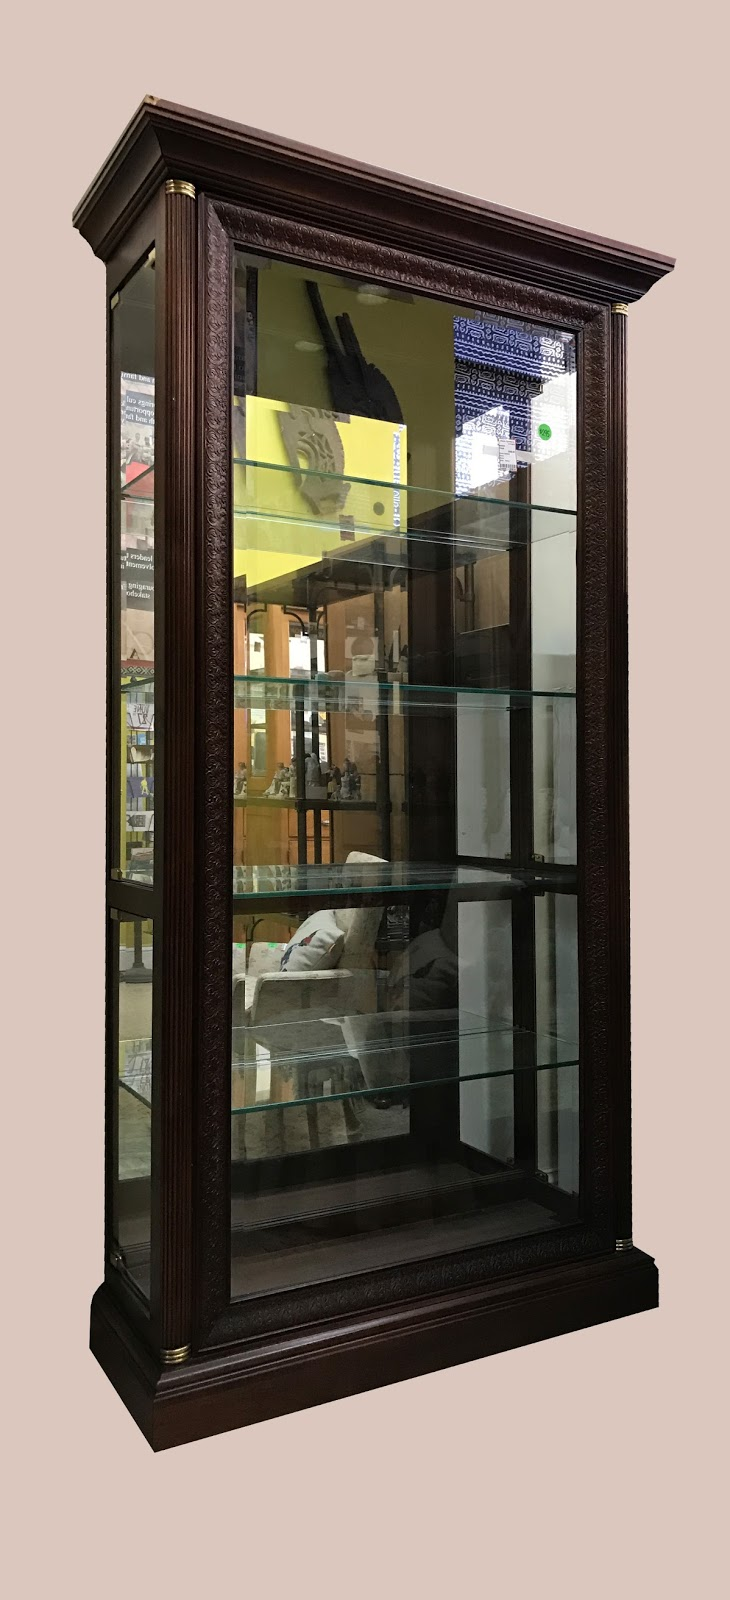 Uhuru Furniture & Collectibles: Large Lighted Curio ...